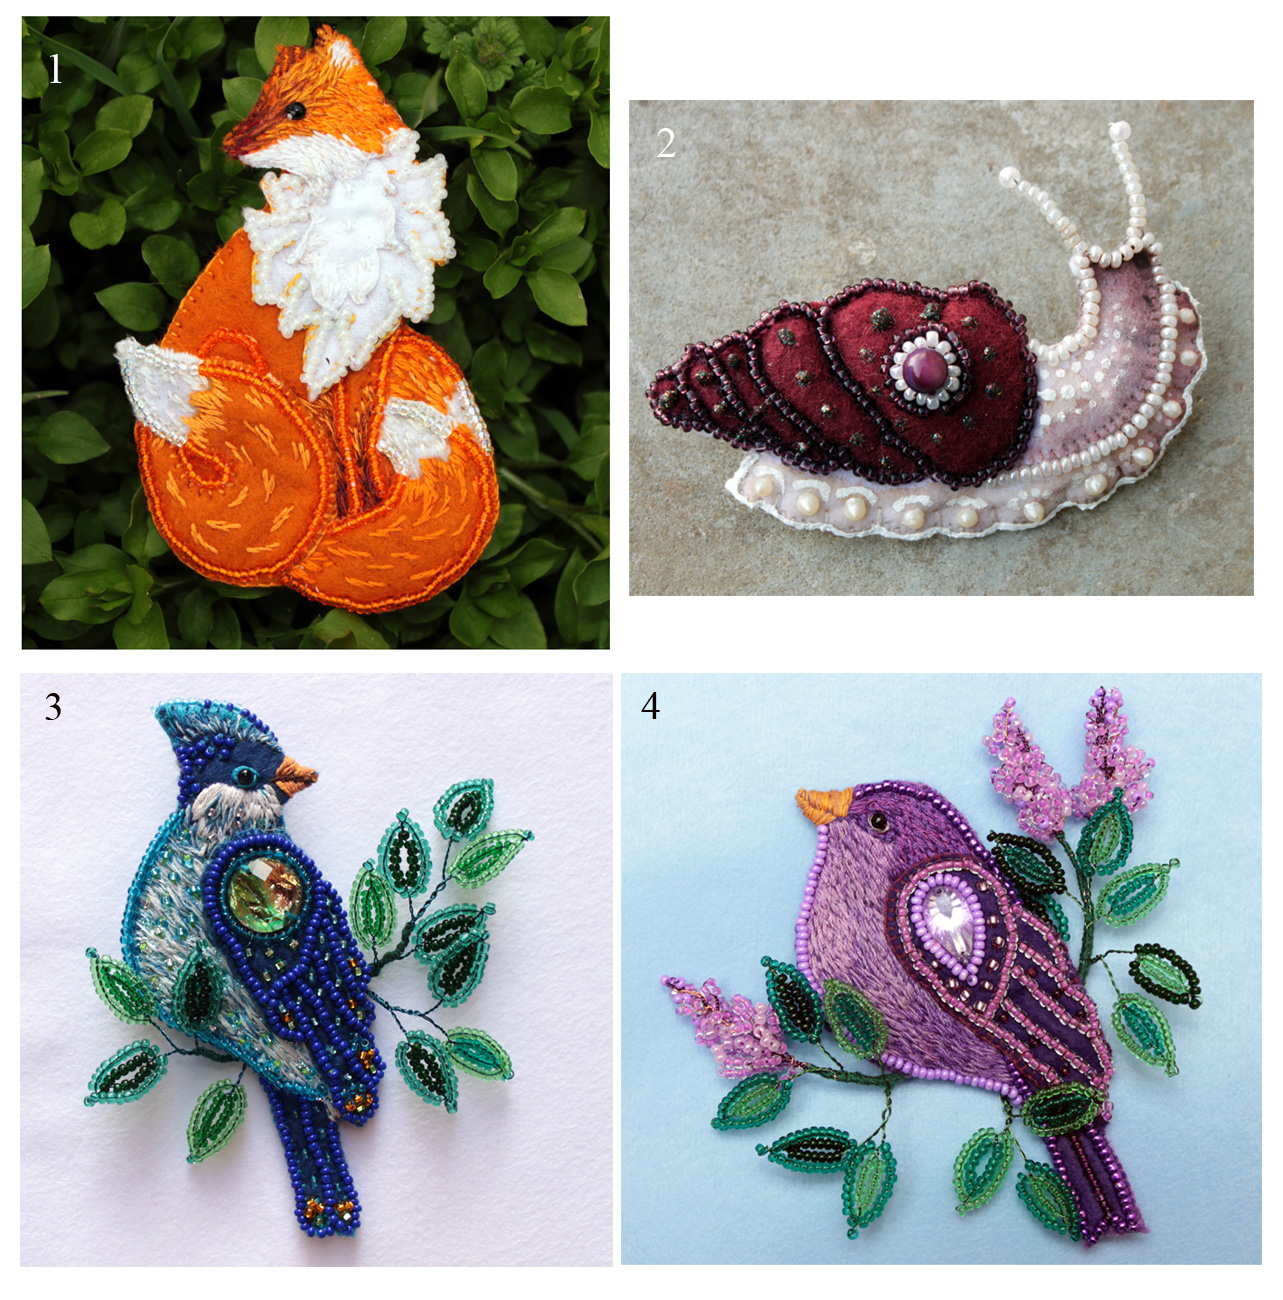 Felt brooches - kitsune, snail and birds by hontor